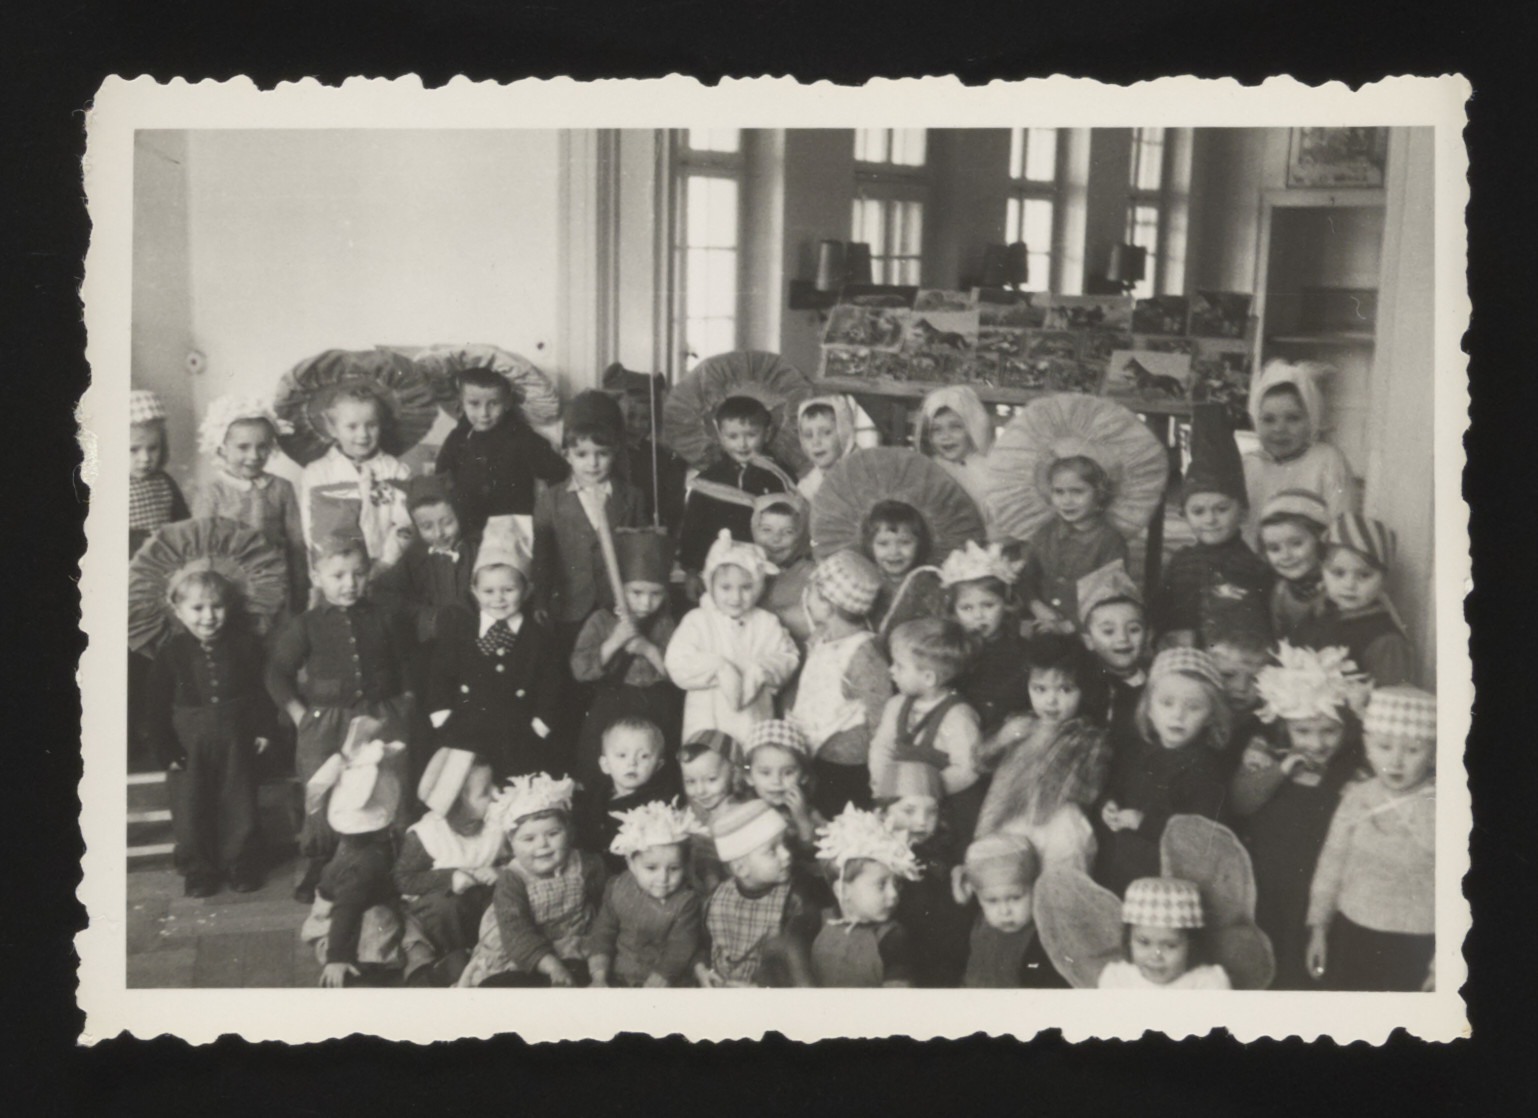 Group portrait of young children dressed in costumes [probably for a Purim celebration in the Deggendorf] displaced persons camp,